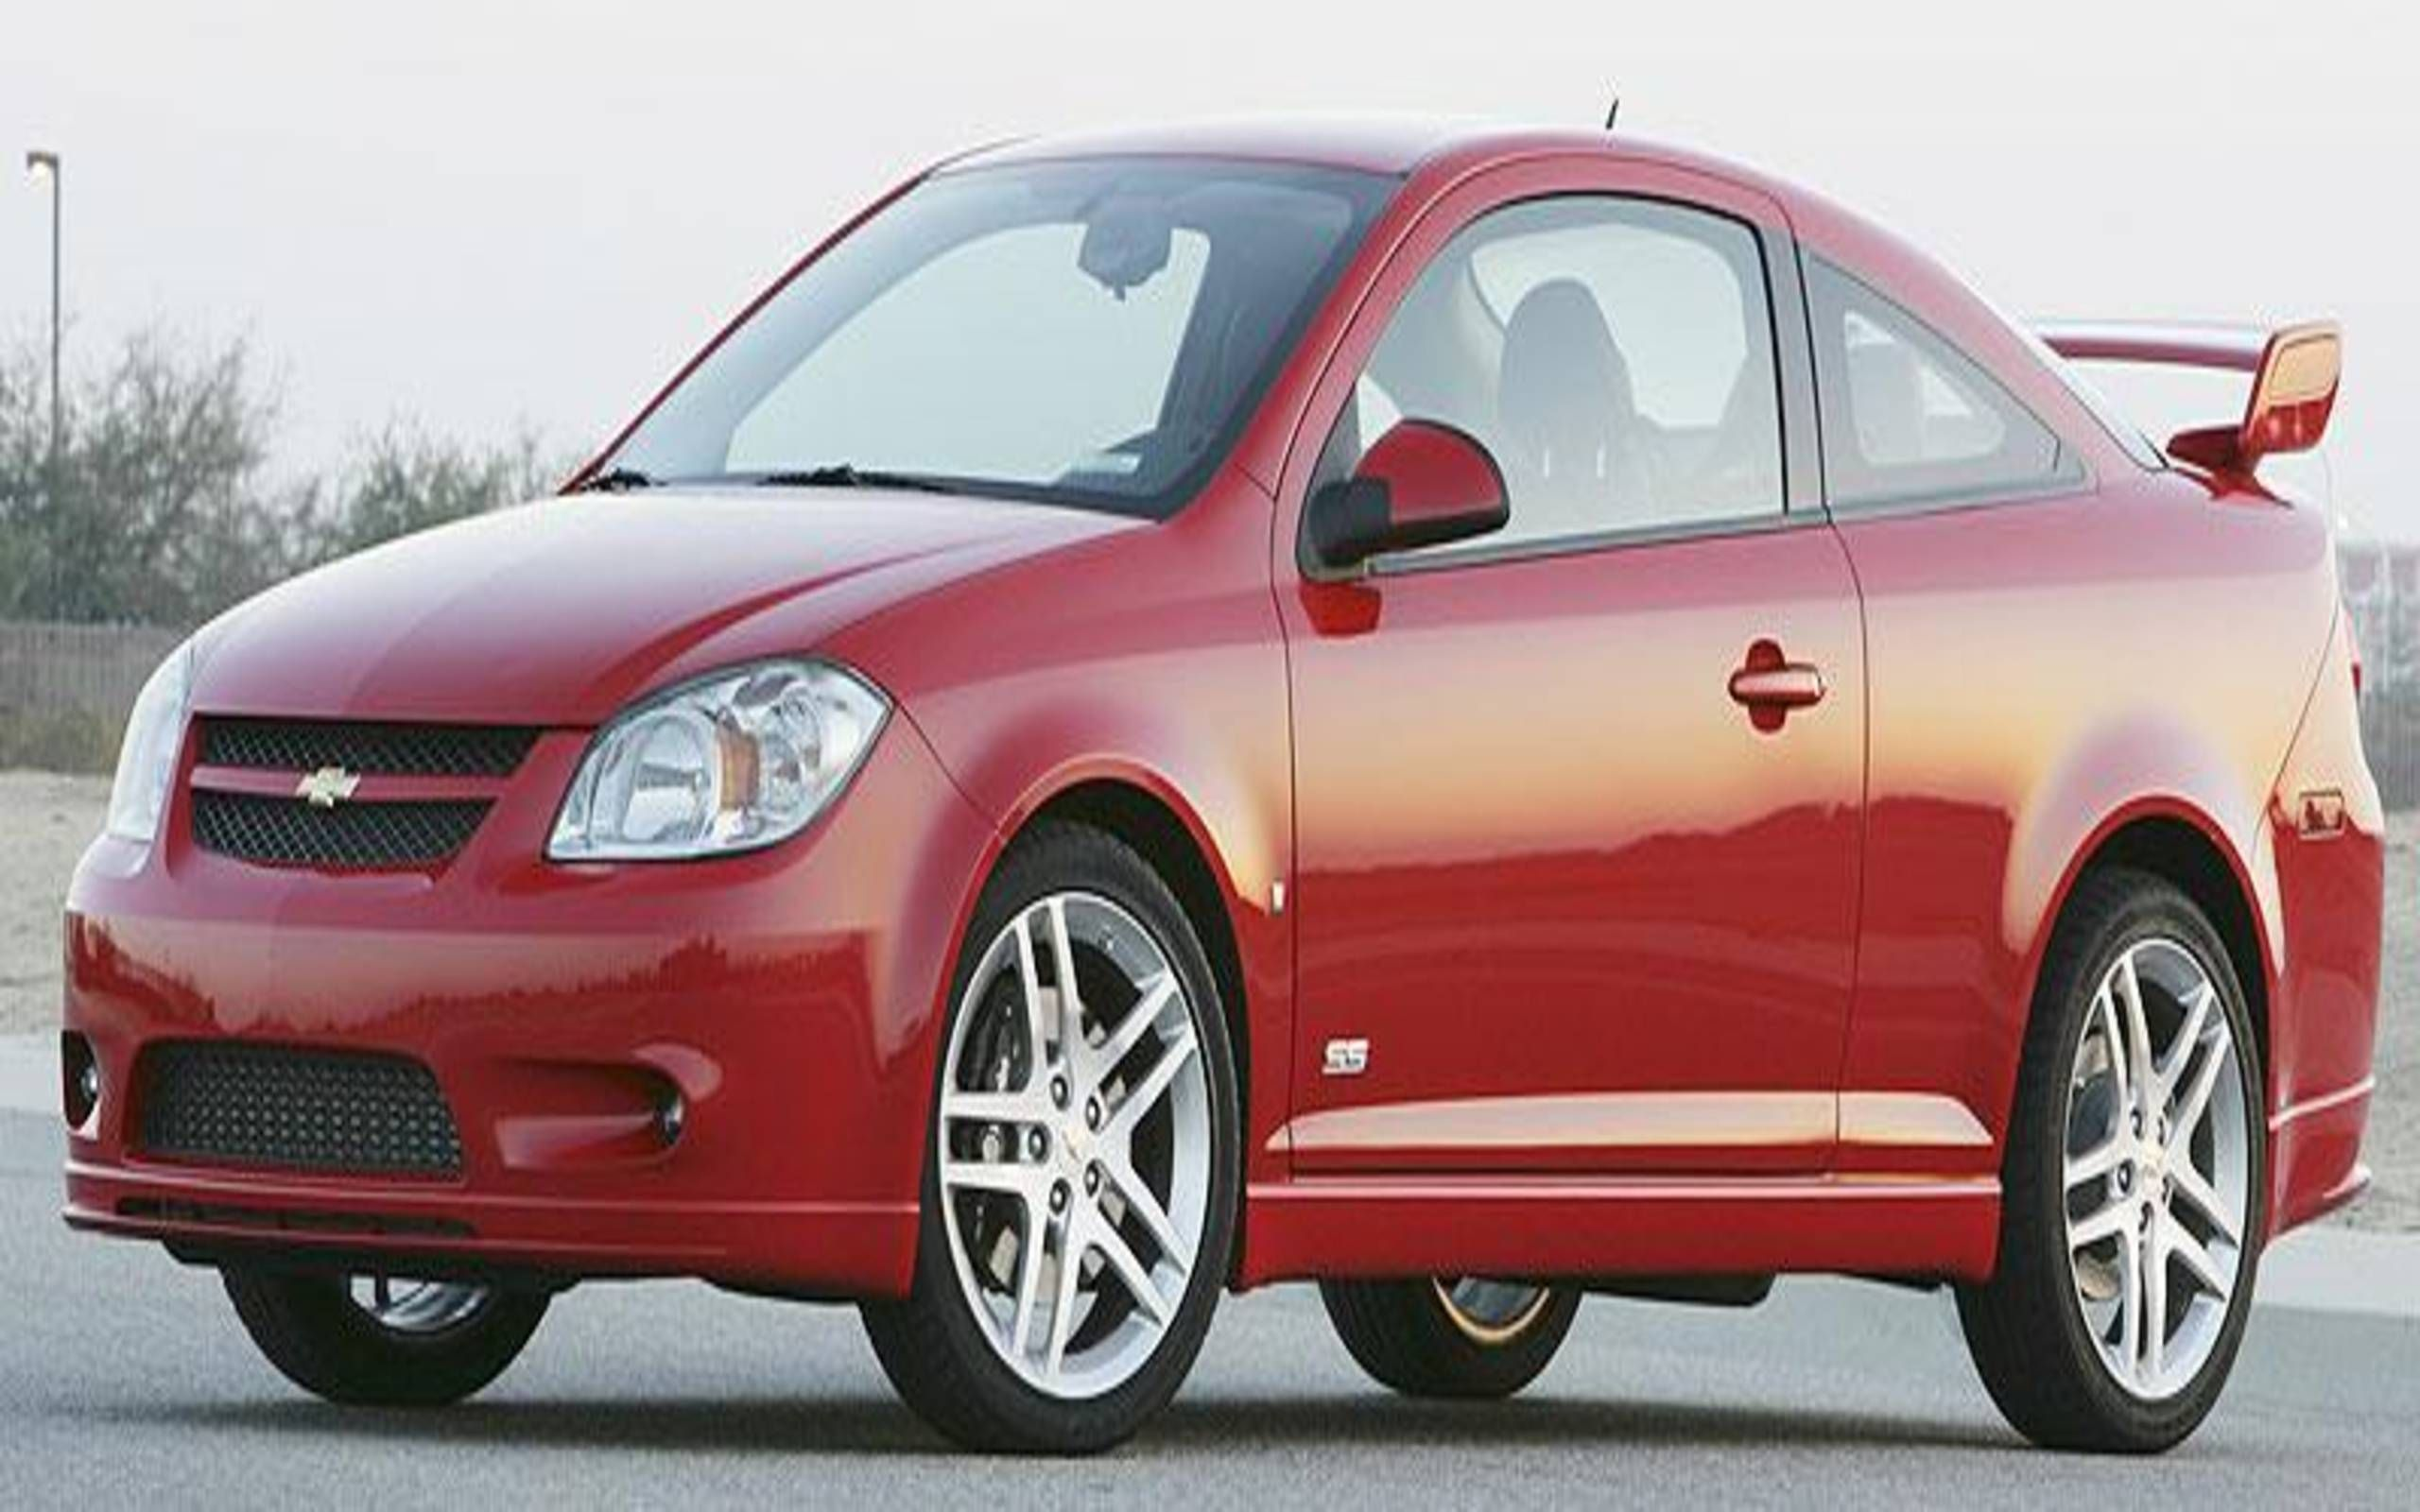 2008 Chevy Cobalt Ss Building A Better Budget Bullet Turbocharged Cobalt Ss Is Surprisingly Refined